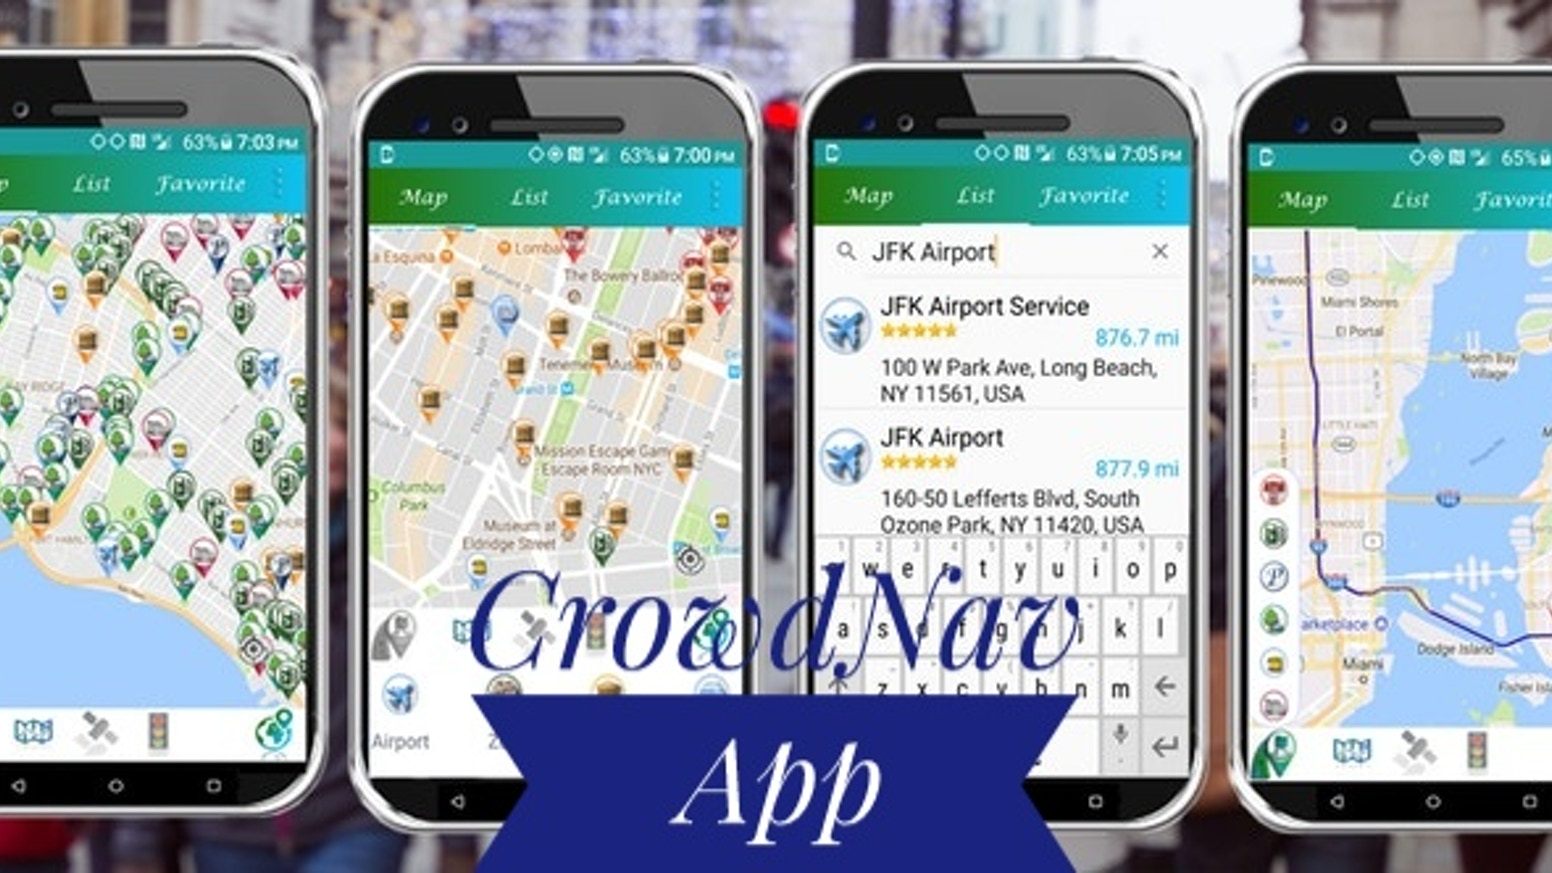 CrowdeNav App help people in their day to day commute,and  updates users how crowded their destinations are in real-tim the busy status